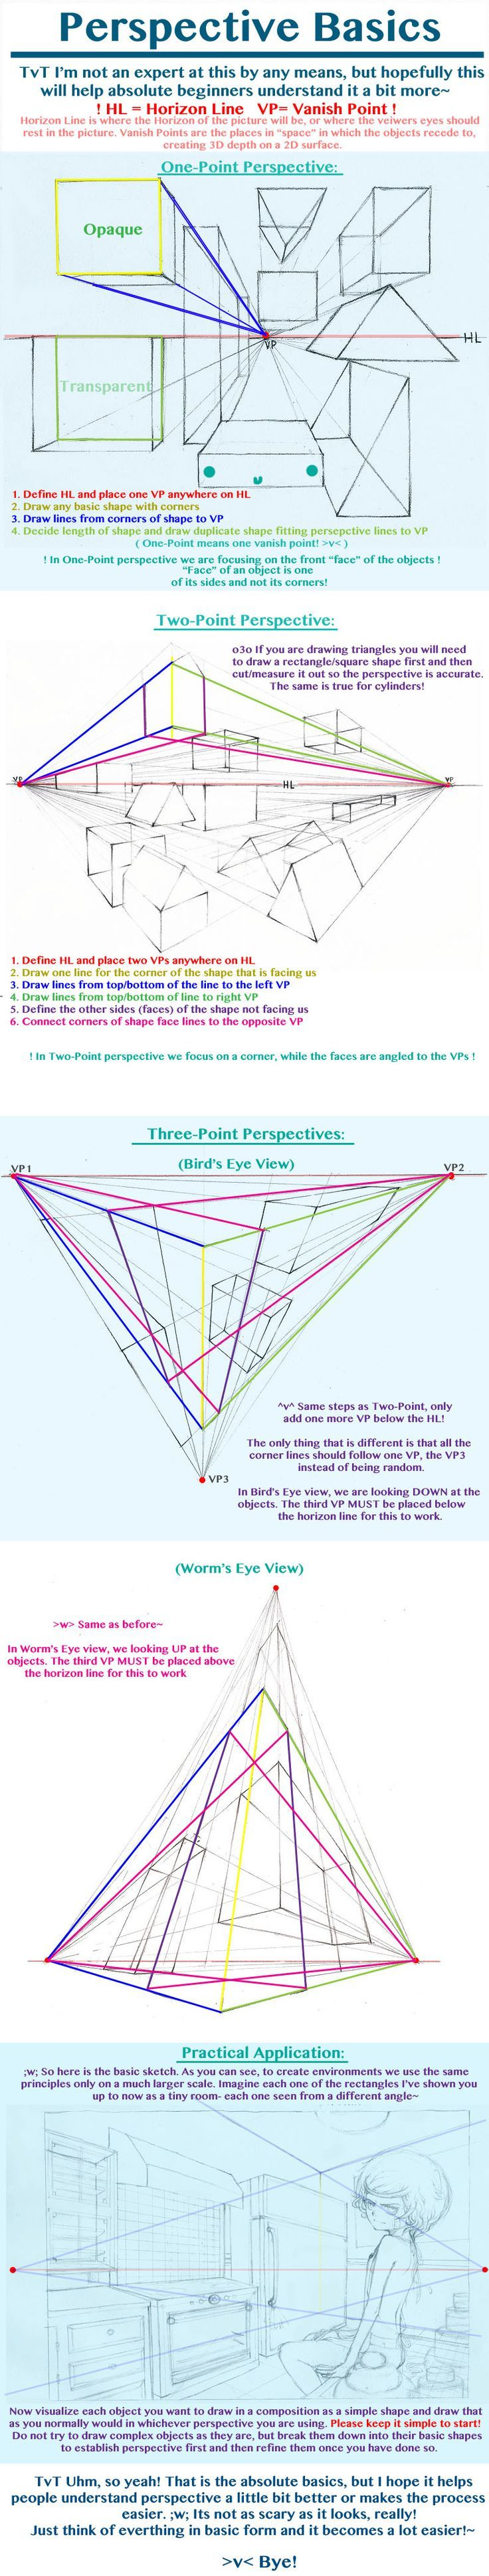 Perspective Basics by *BlueRoseArkelle on deviantART join us http://pinterest.com/koztar/: